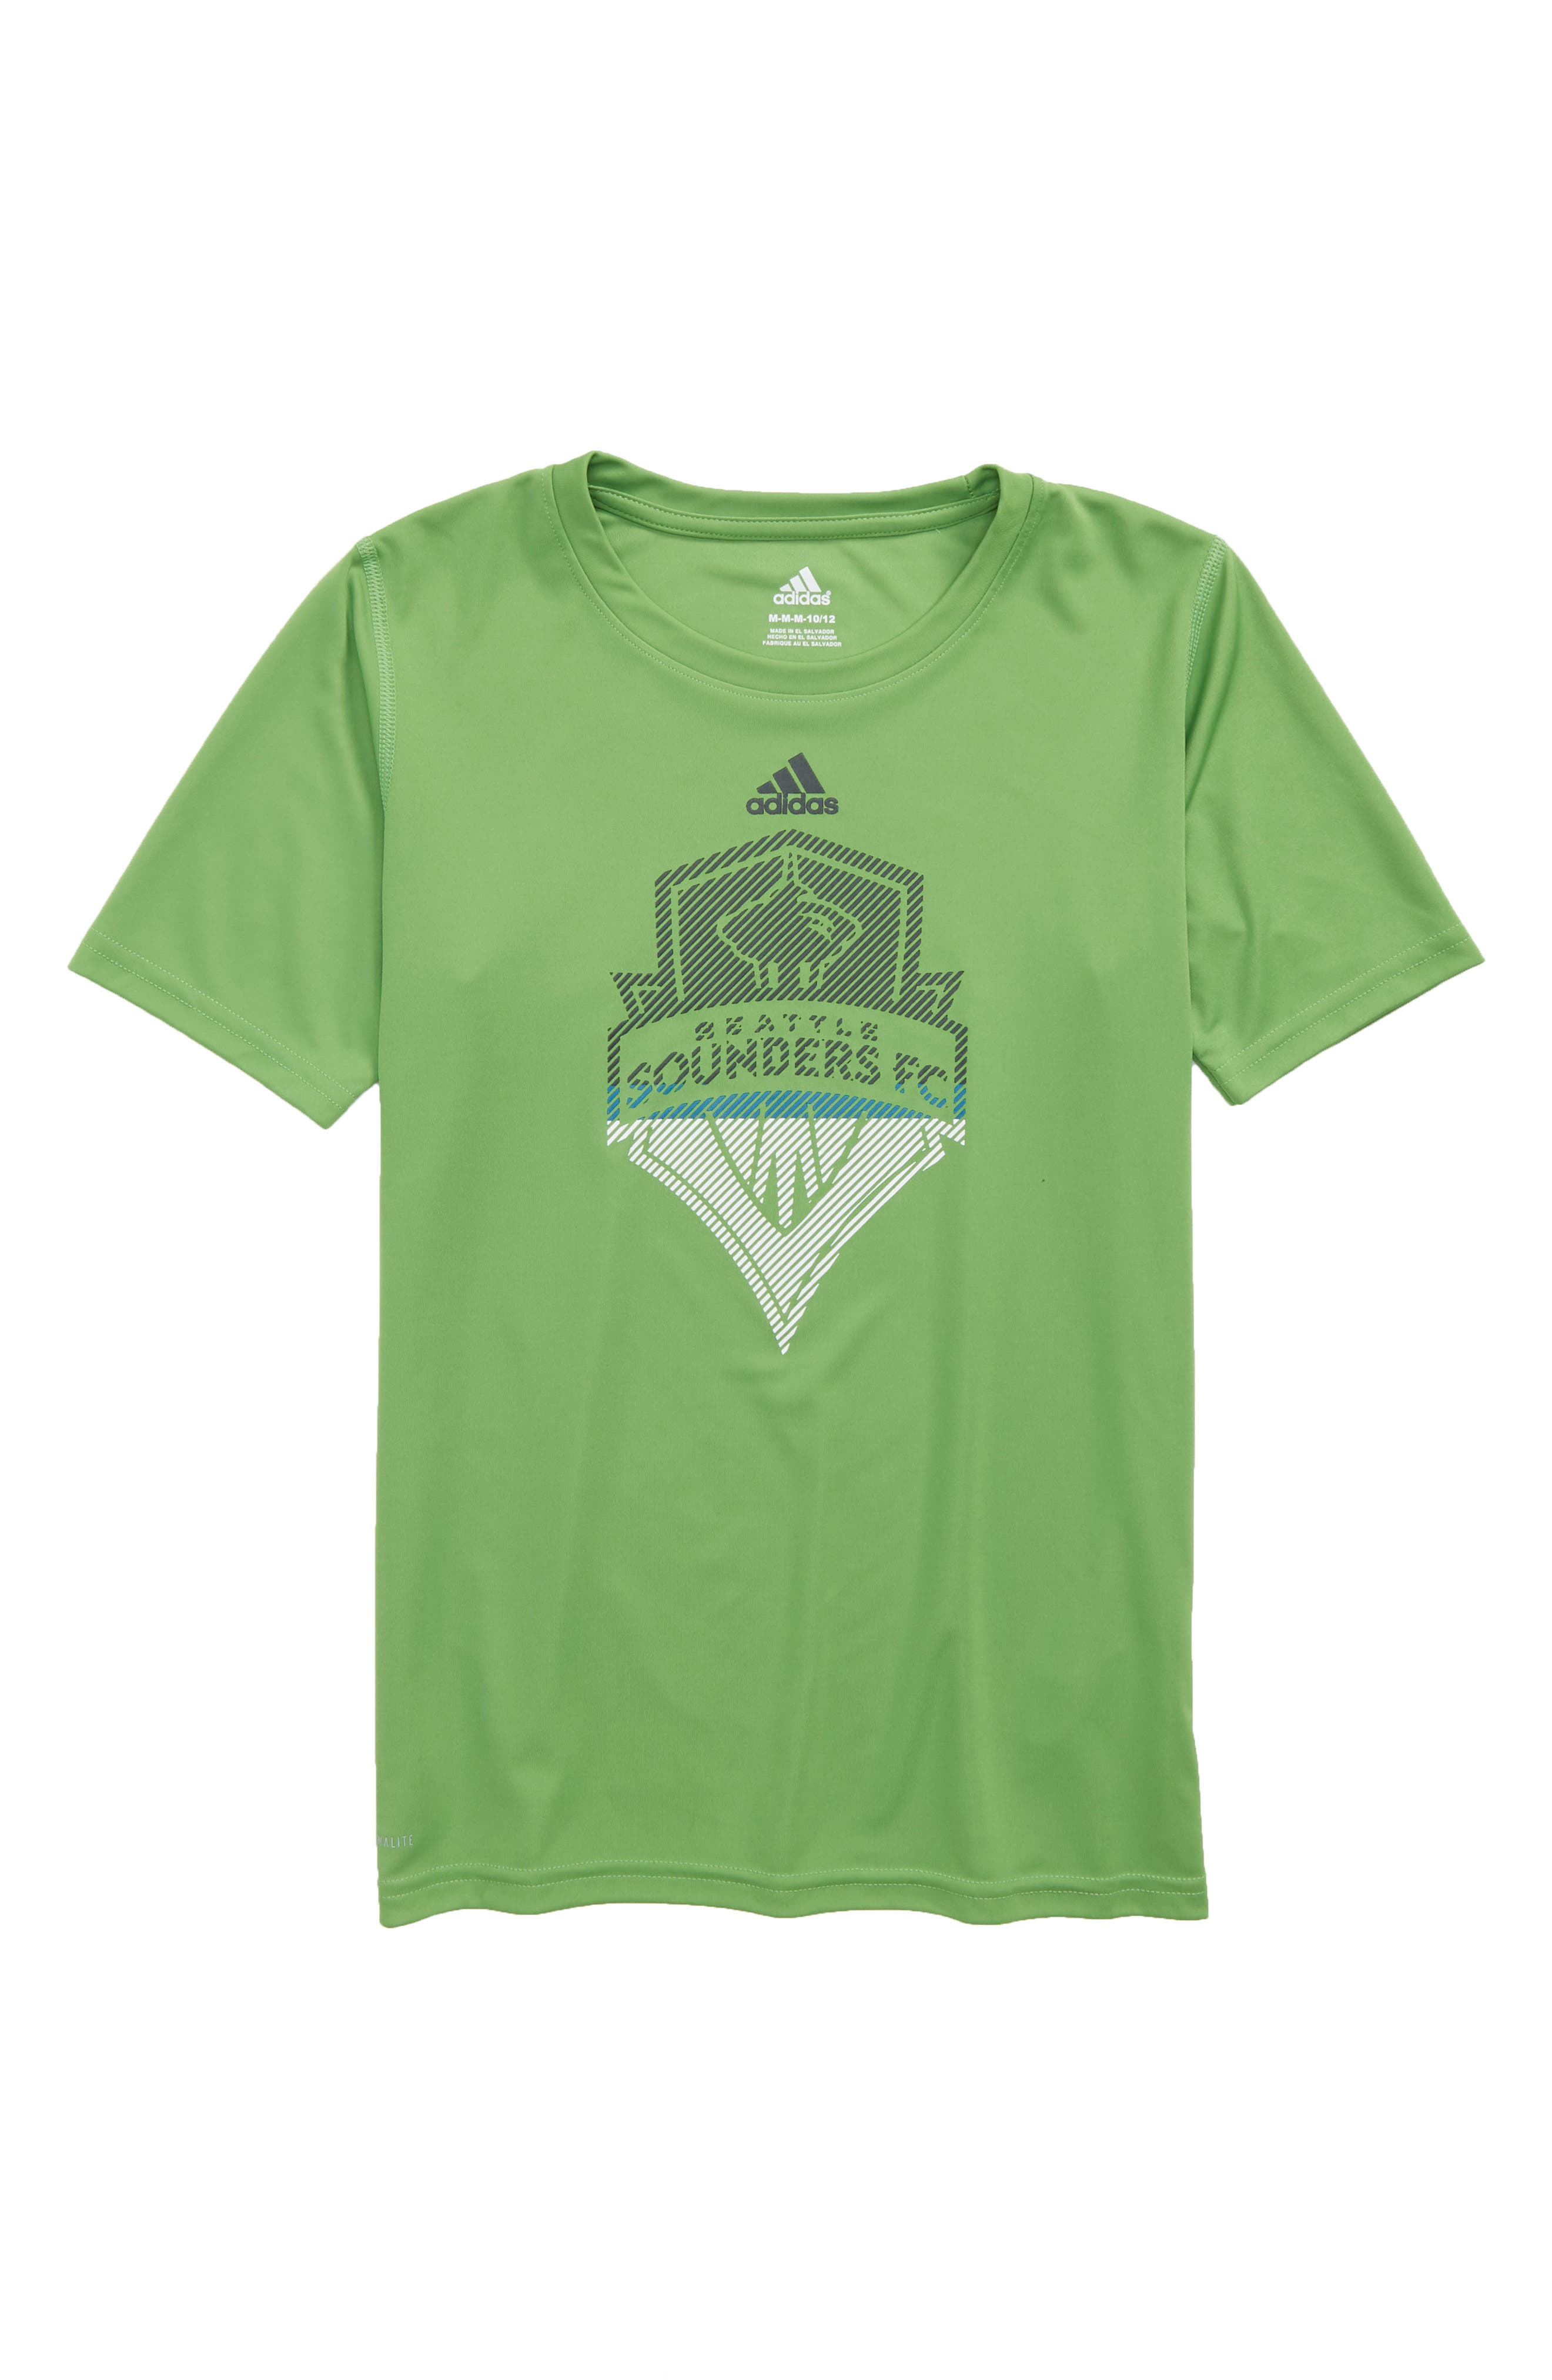 MLS Seattle Sounders FC Climalite<sup>®</sup> T-Shirt,                             Main thumbnail 1, color,                             Green